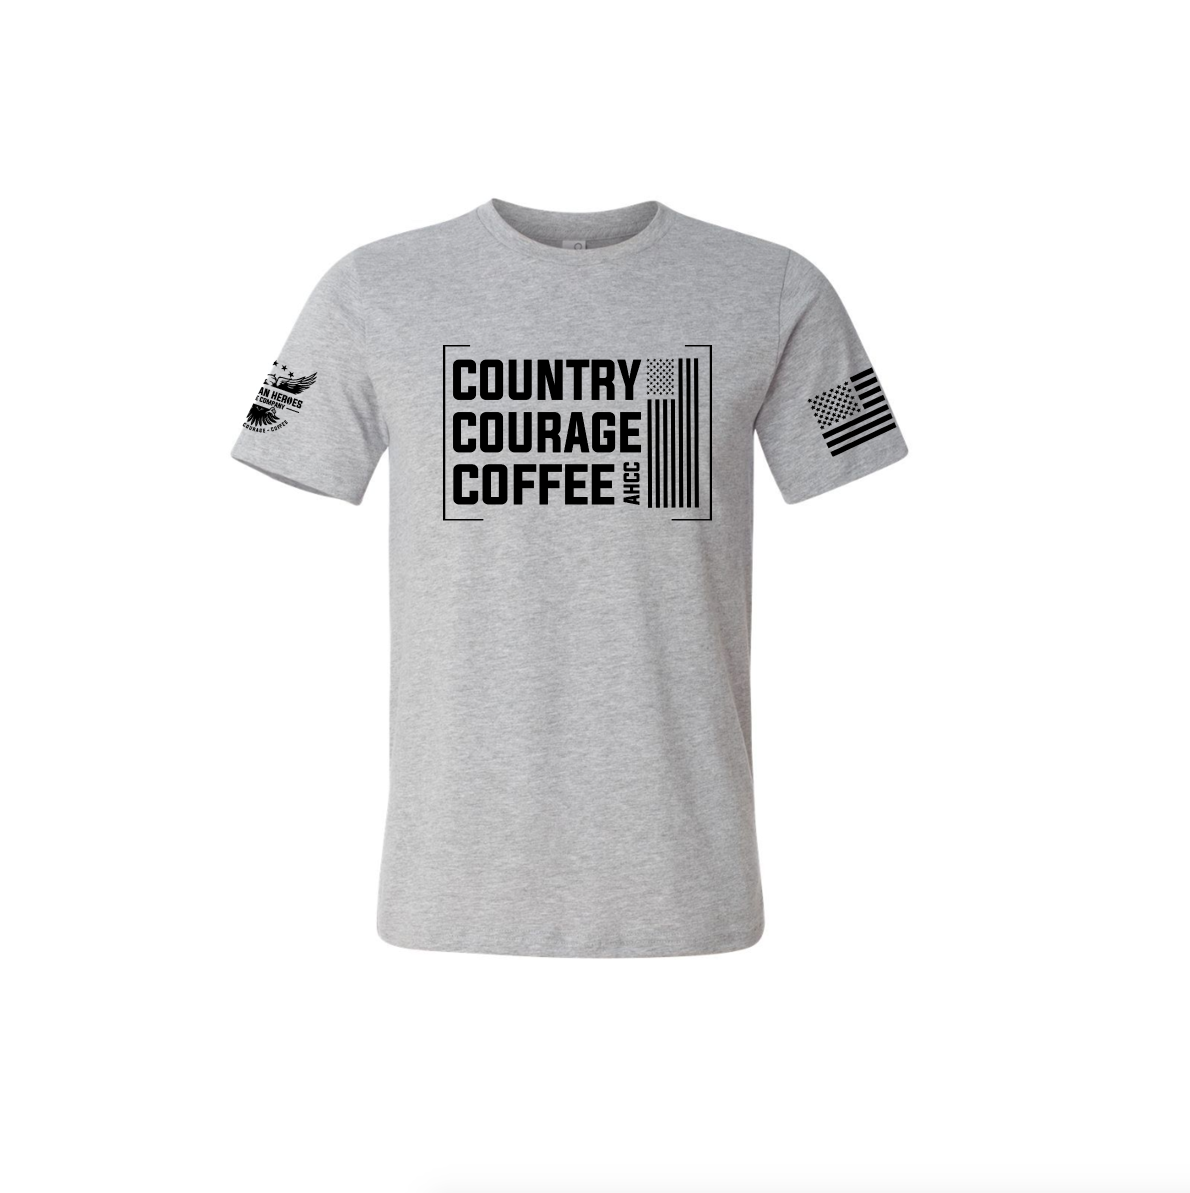 Country. Courage. Coffee. T-Shirt